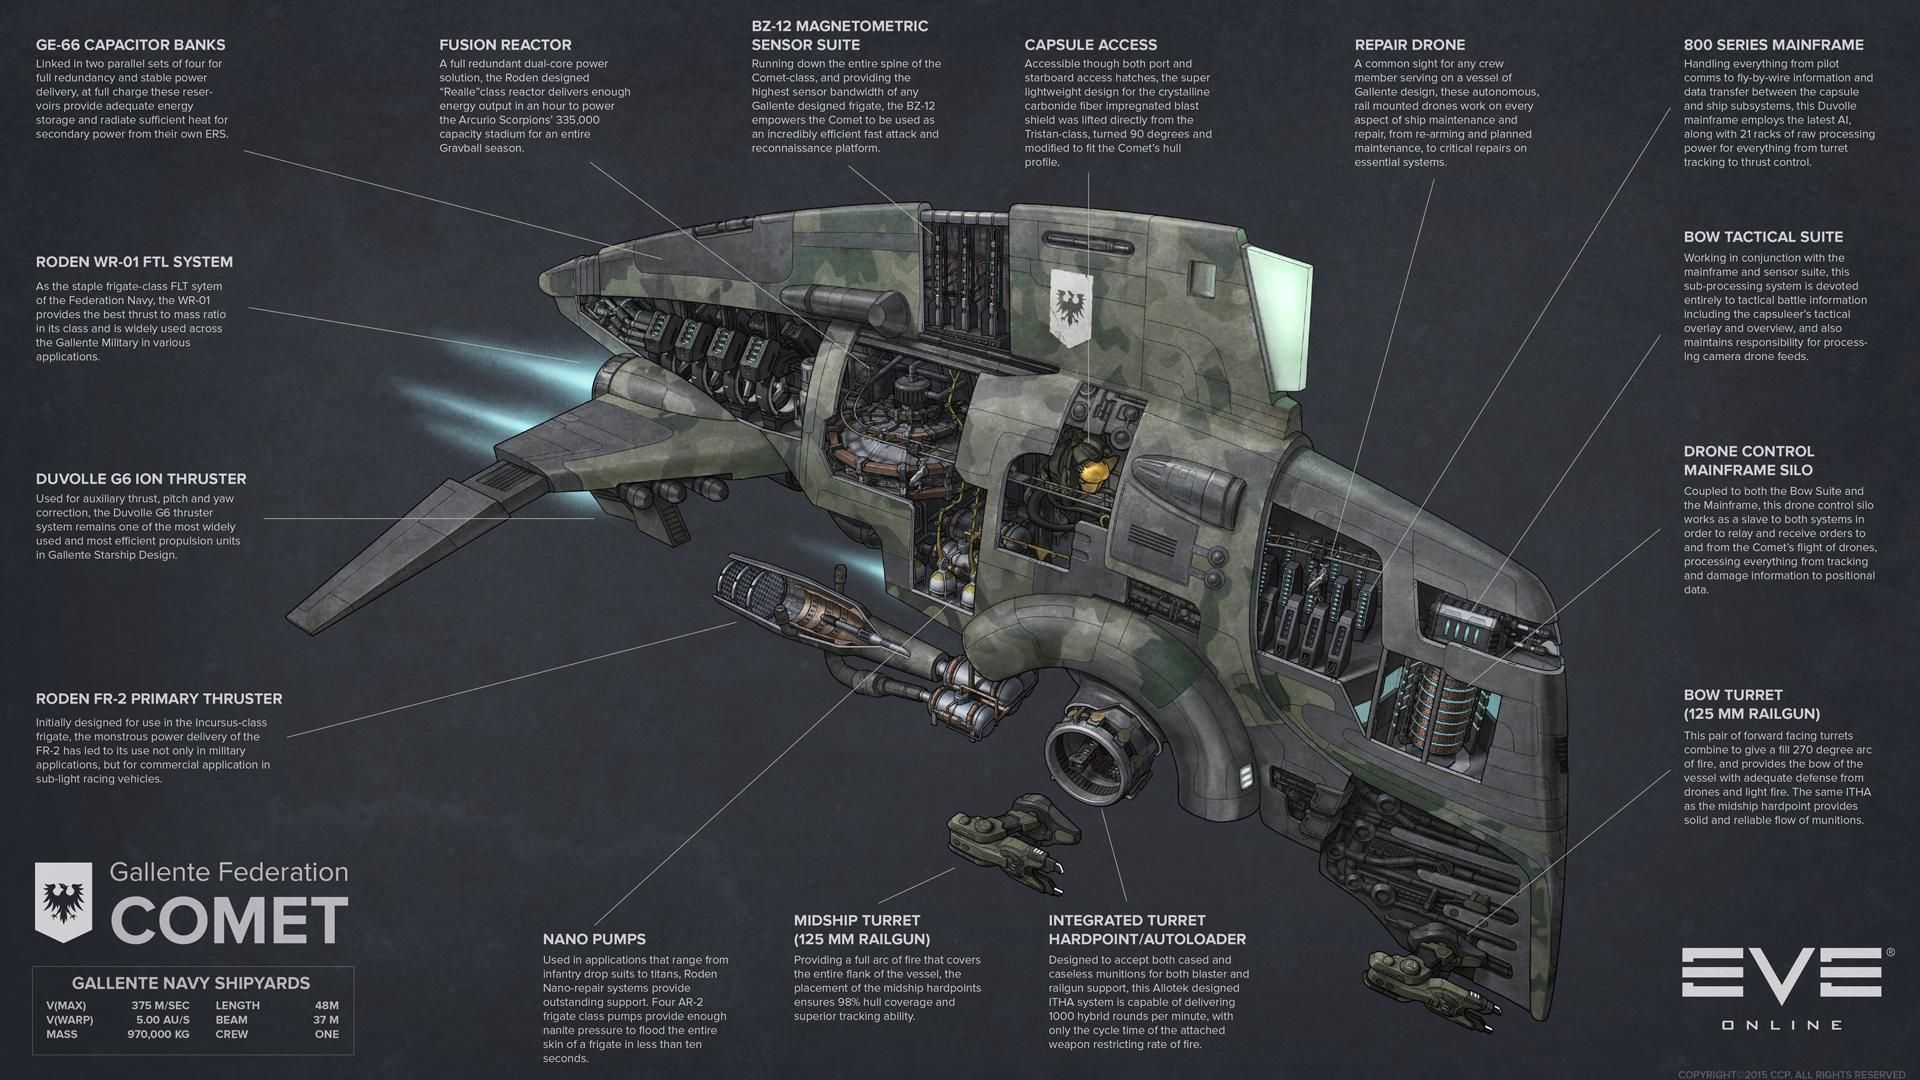 hight resolution of under the skin of the gallente comet class frigate imgur